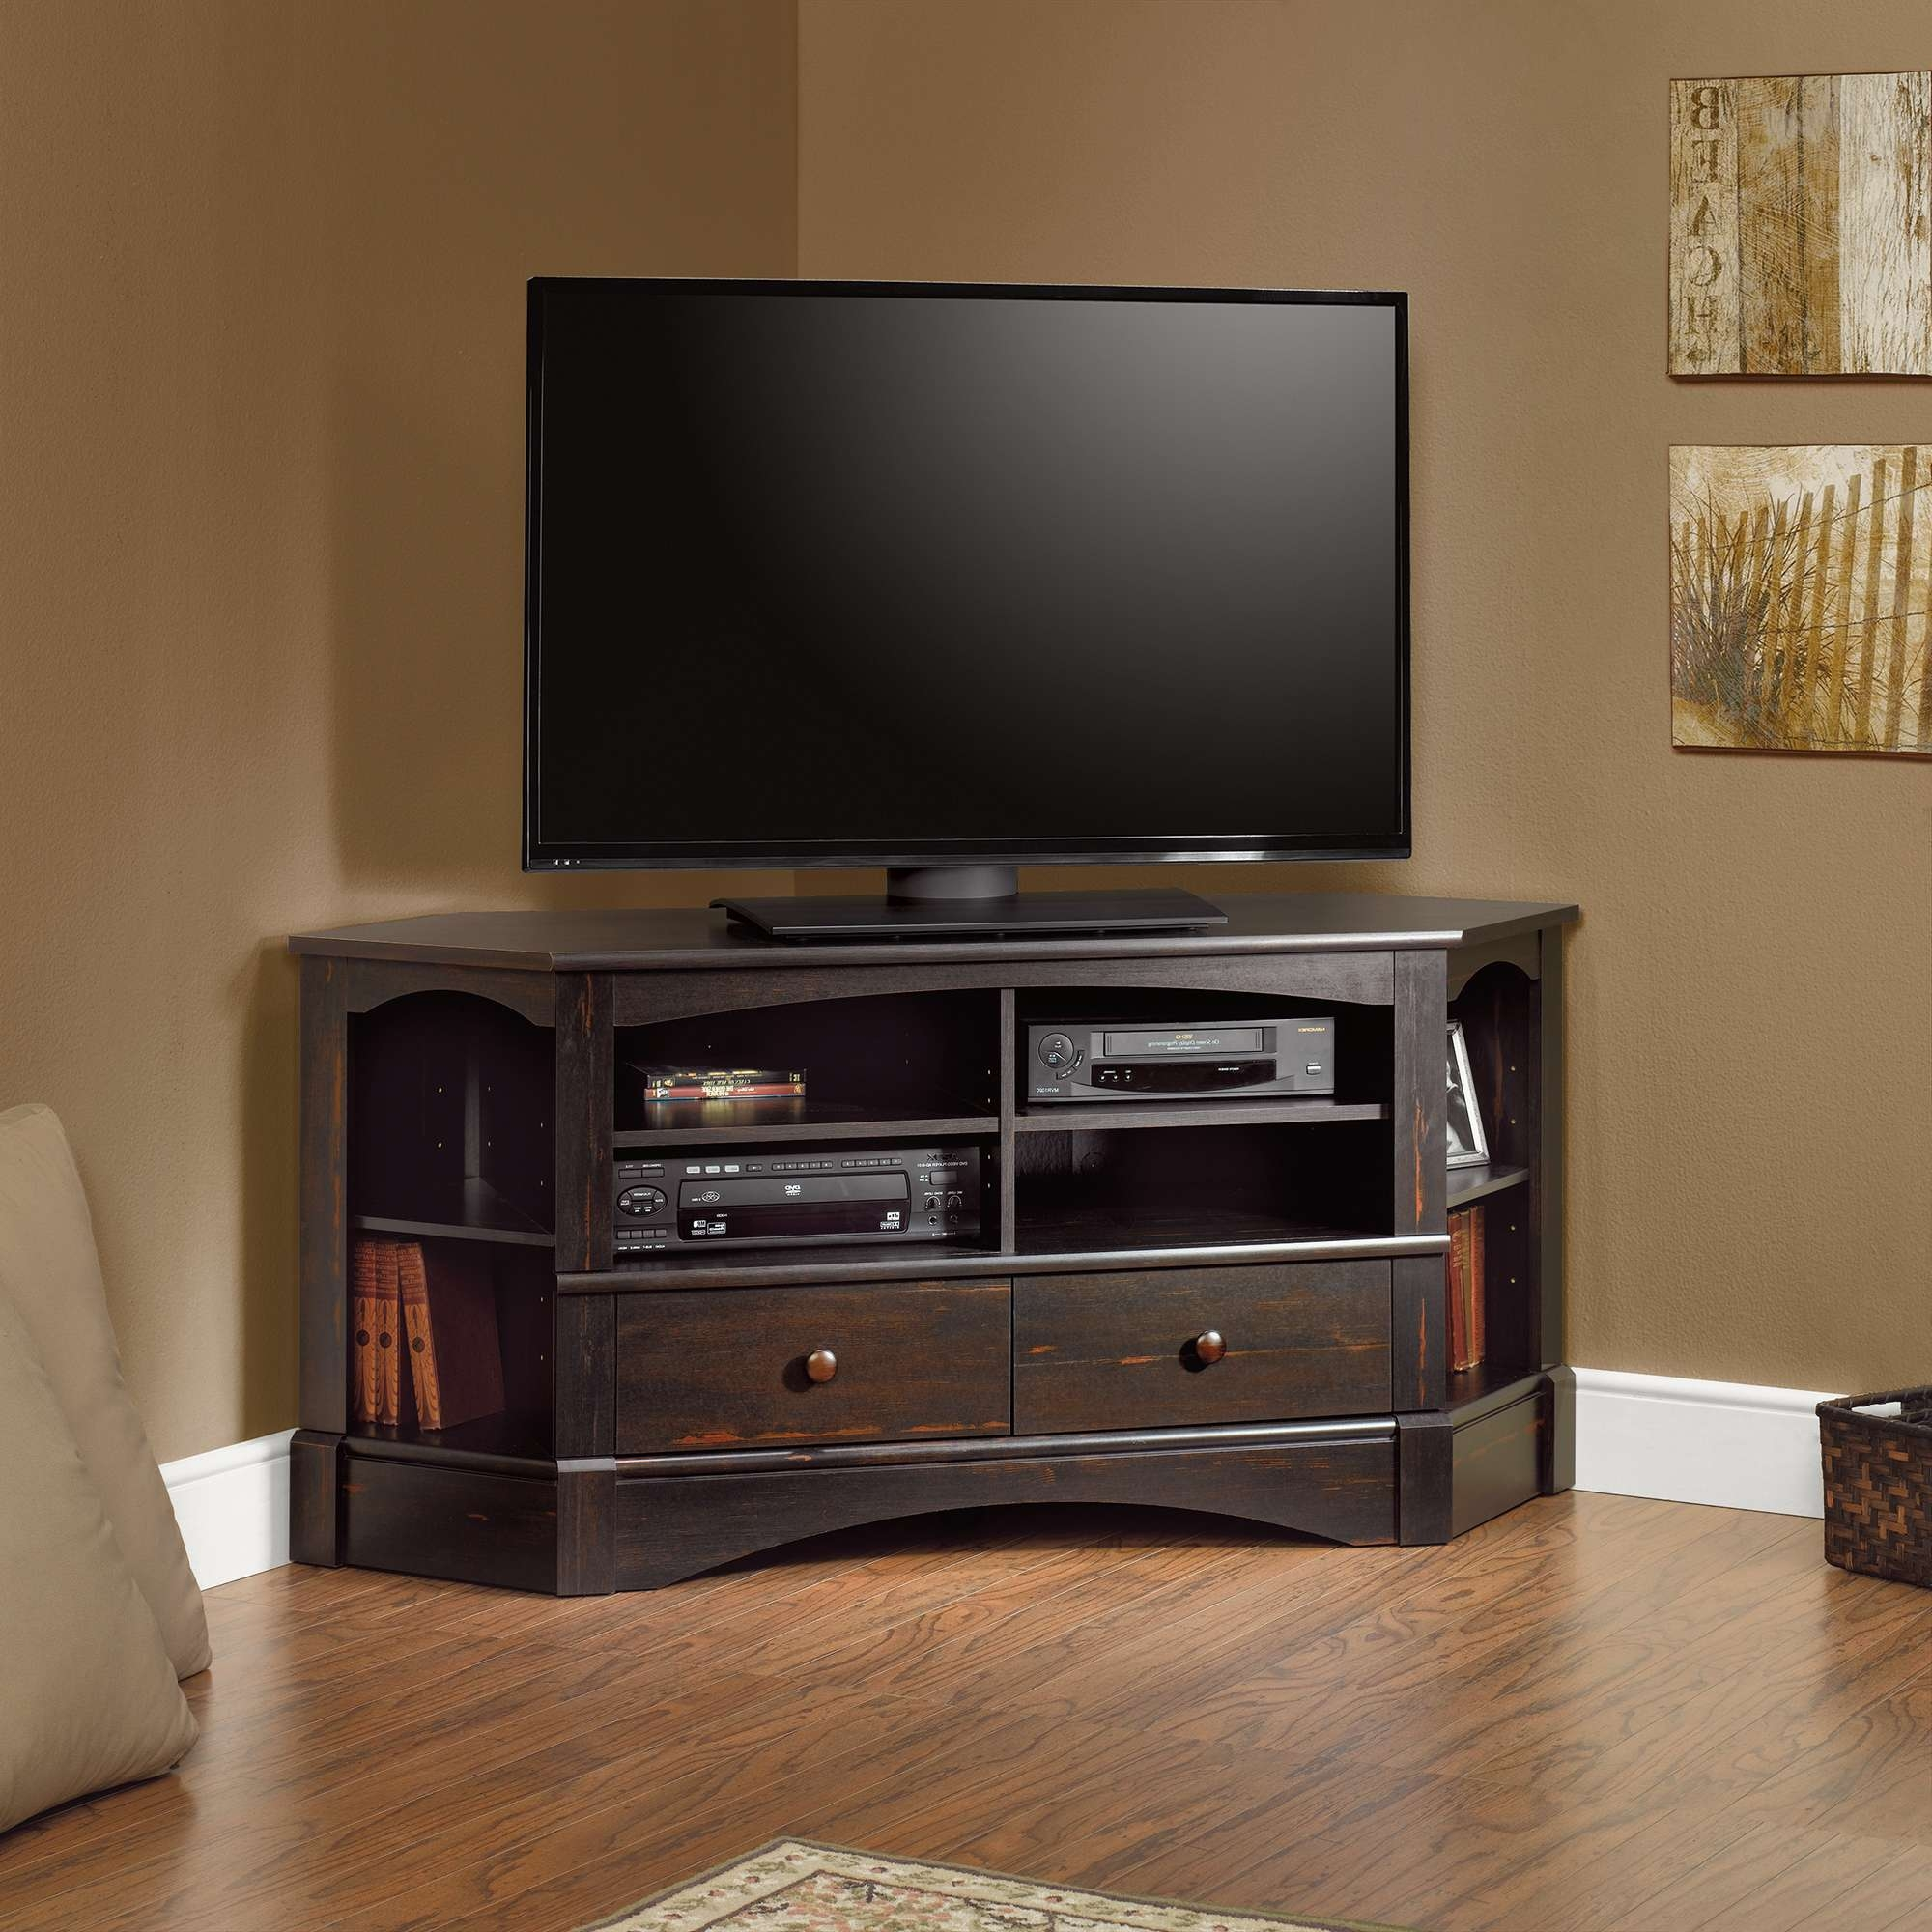 Corner Tv Stands For Flat Screen Tvs For Flat Screen Tv Stands Corner Units (View 12 of 20)